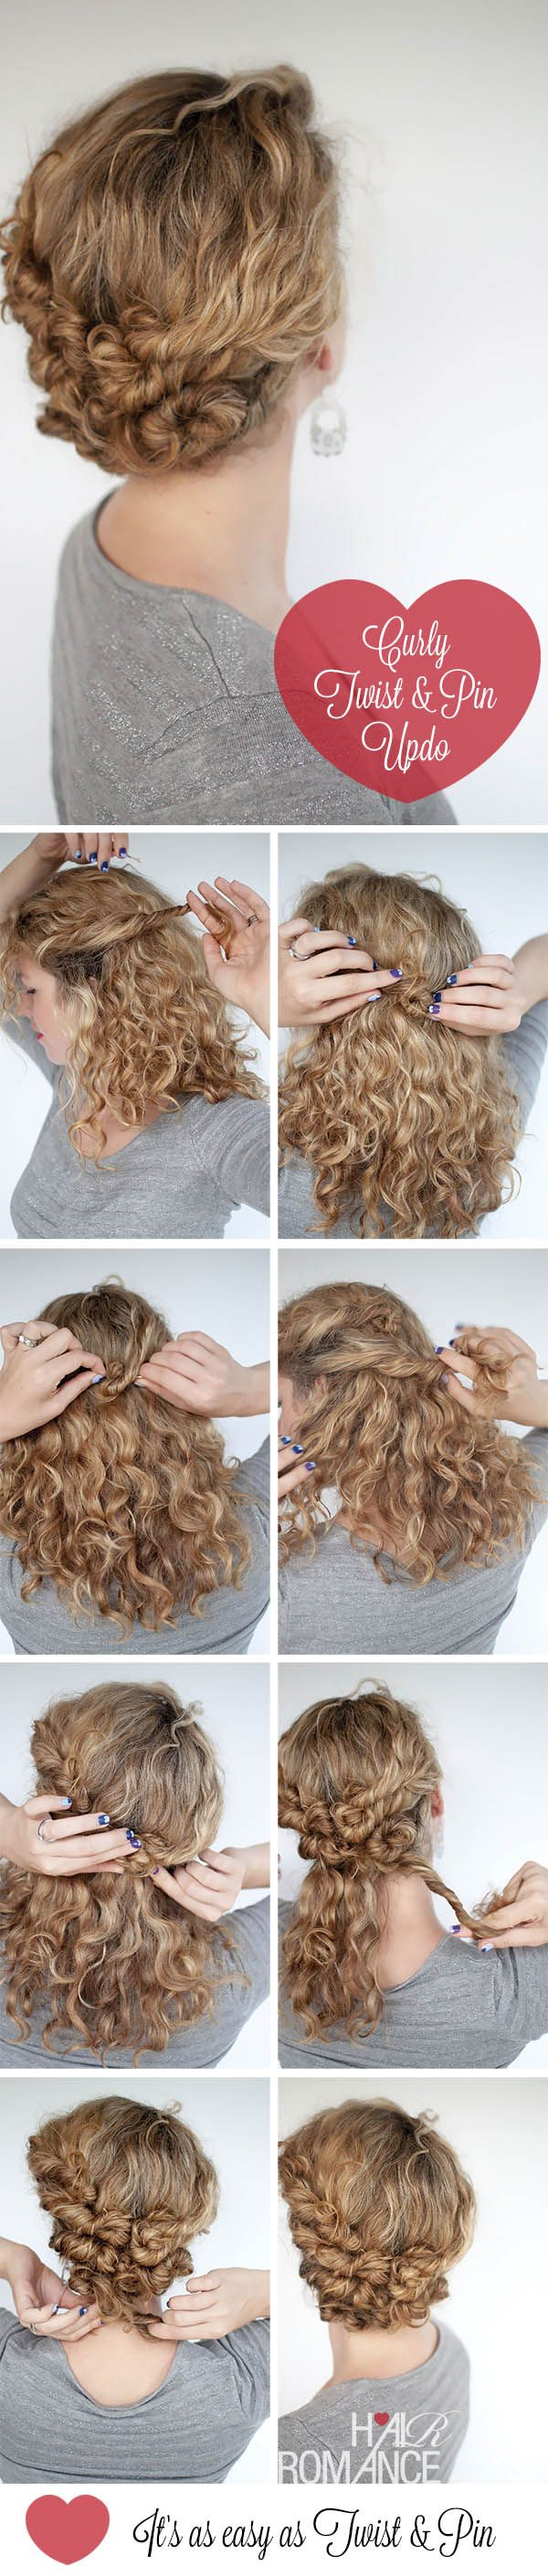 Easy Travel Hairstyles How To: Twist and Pin Updo - Her Packing List